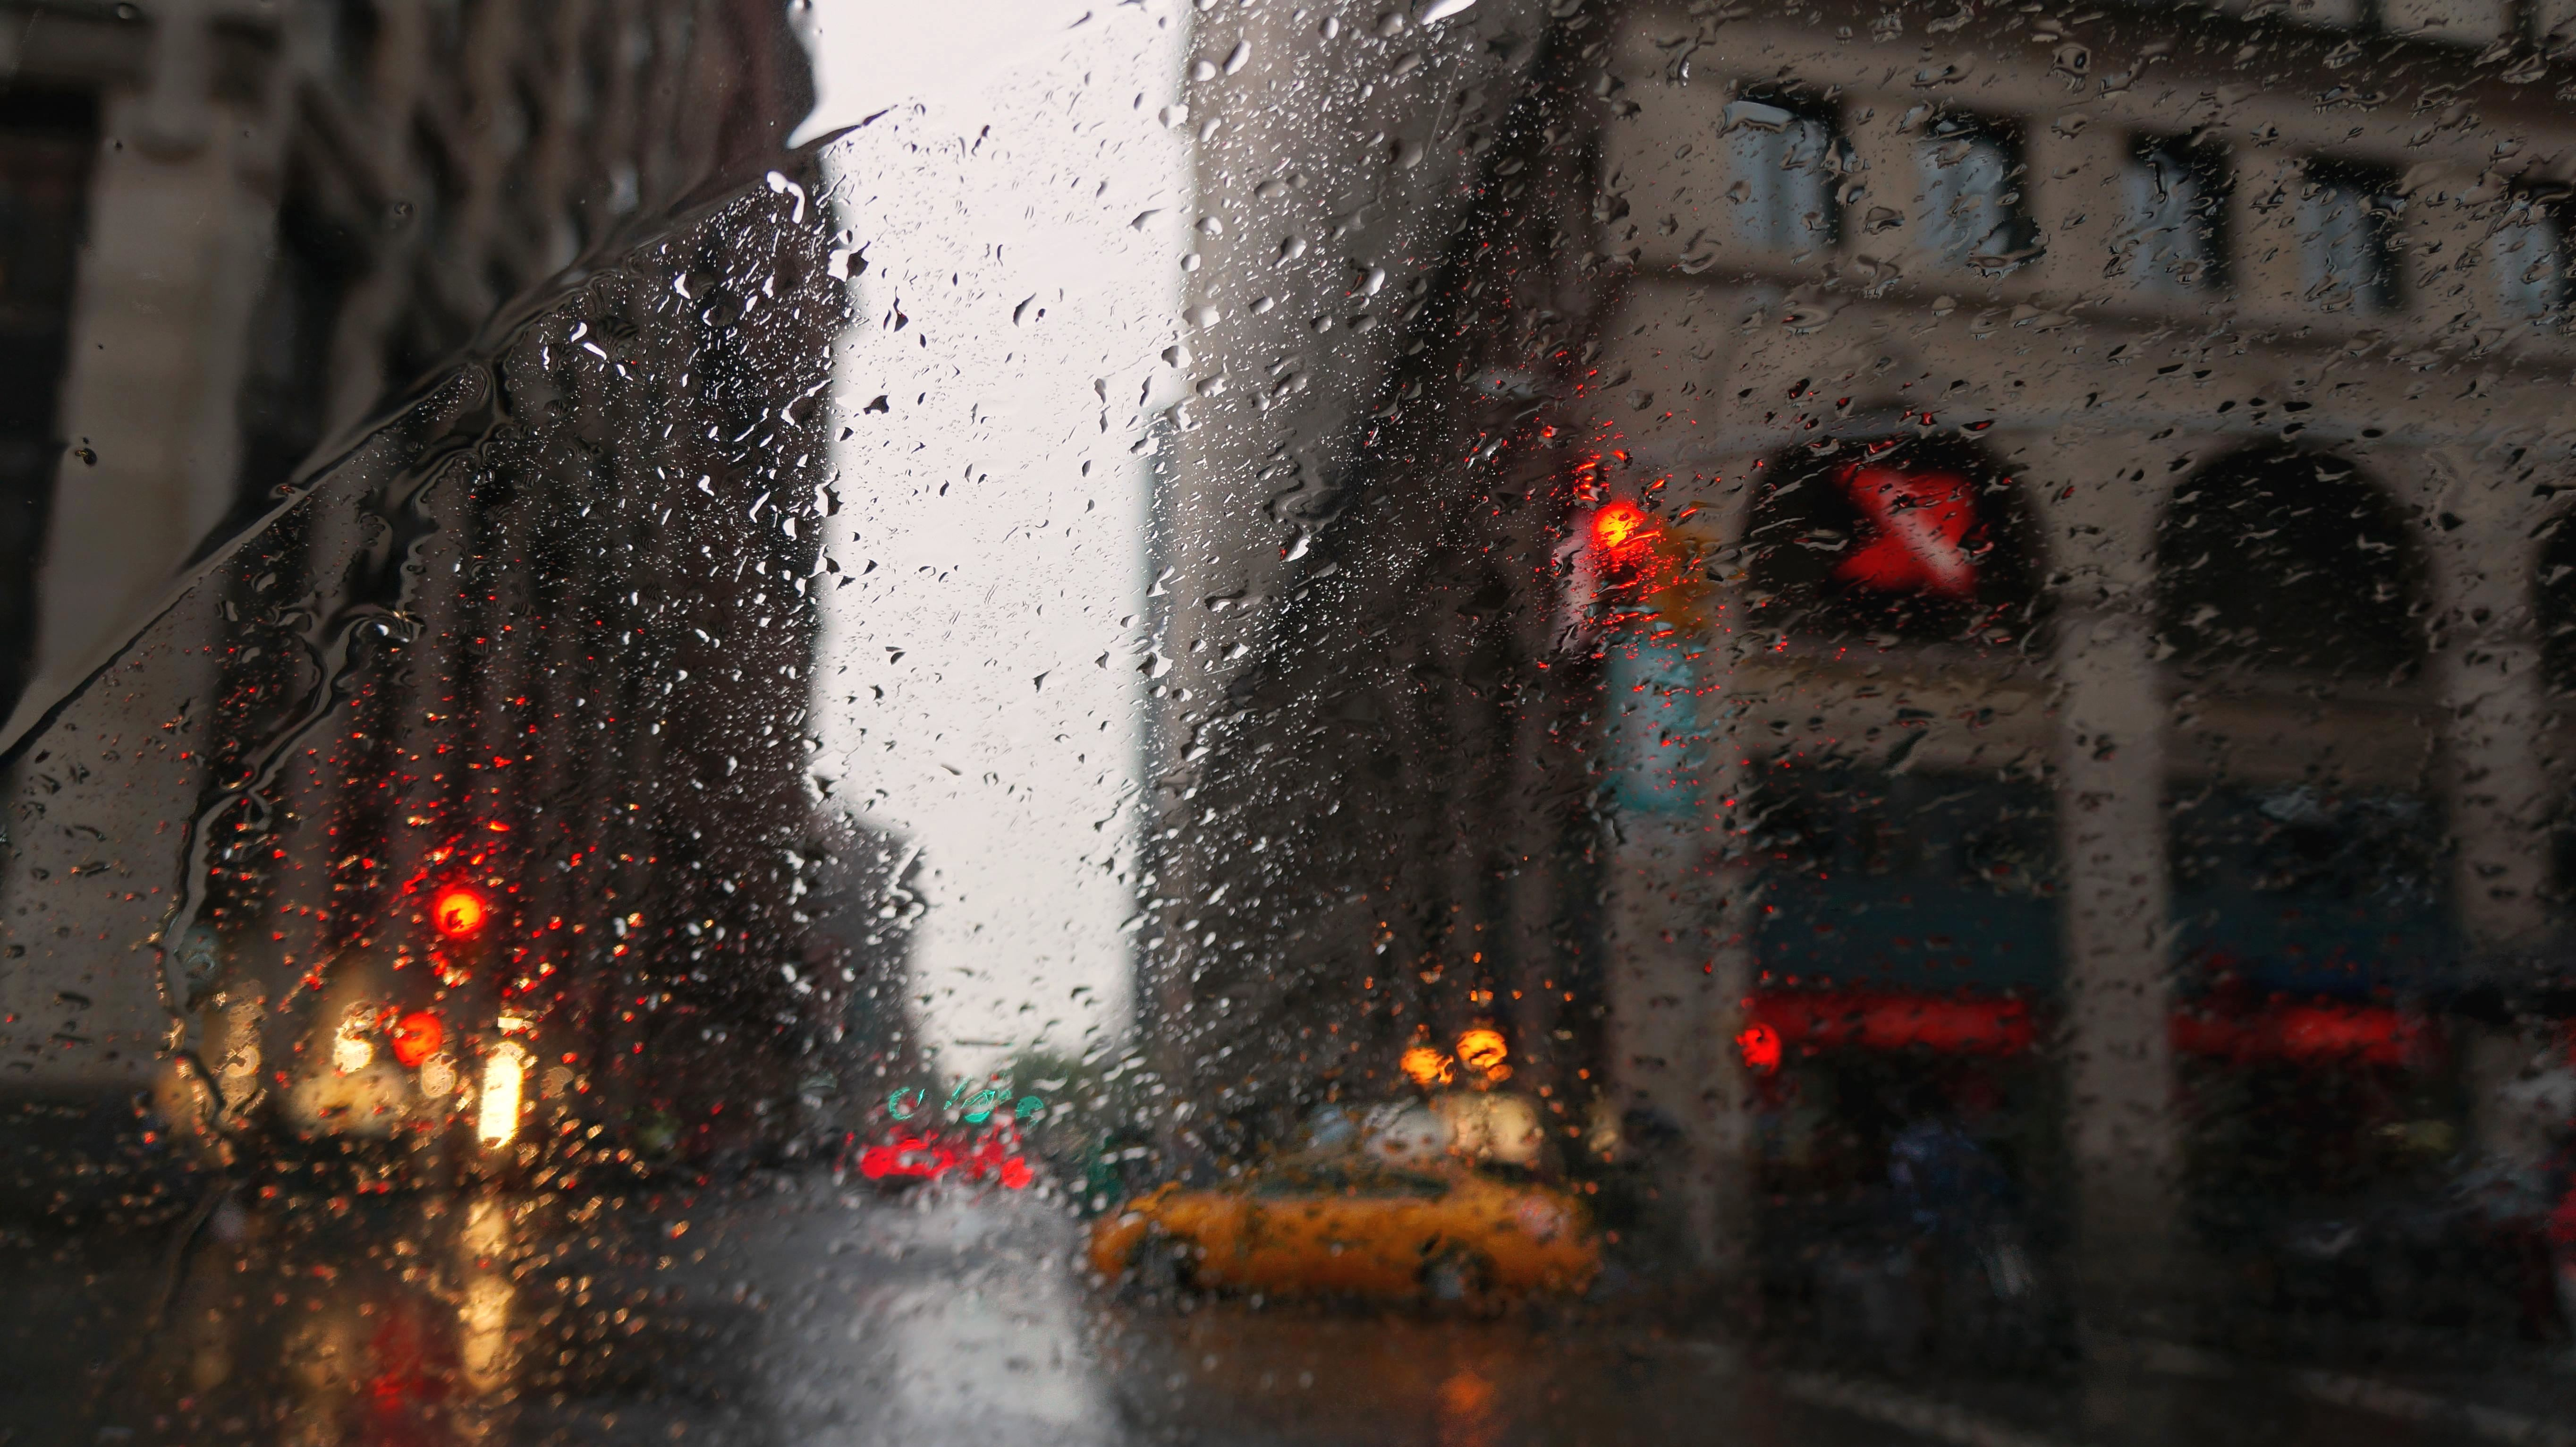 Download New York Rain Wallpaper Gallery